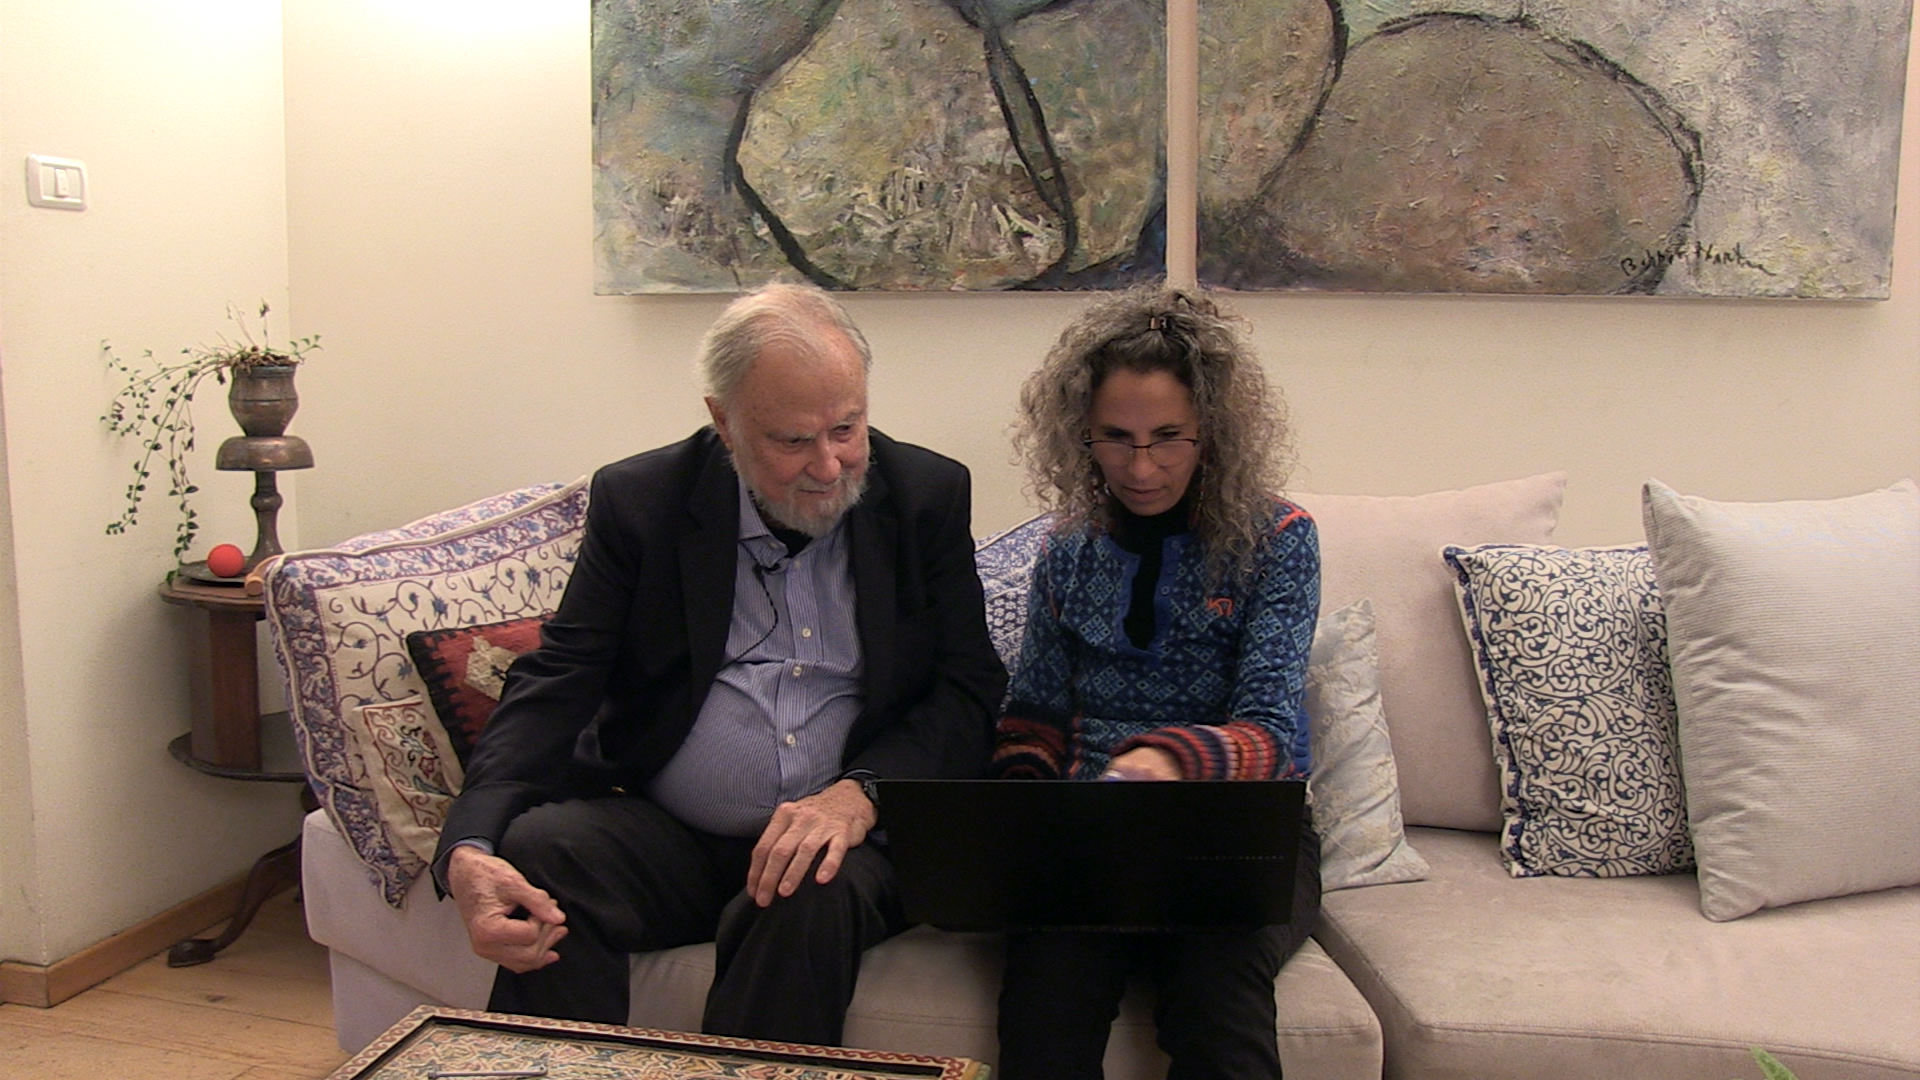 Dr. James Gilligan and Shira Richter